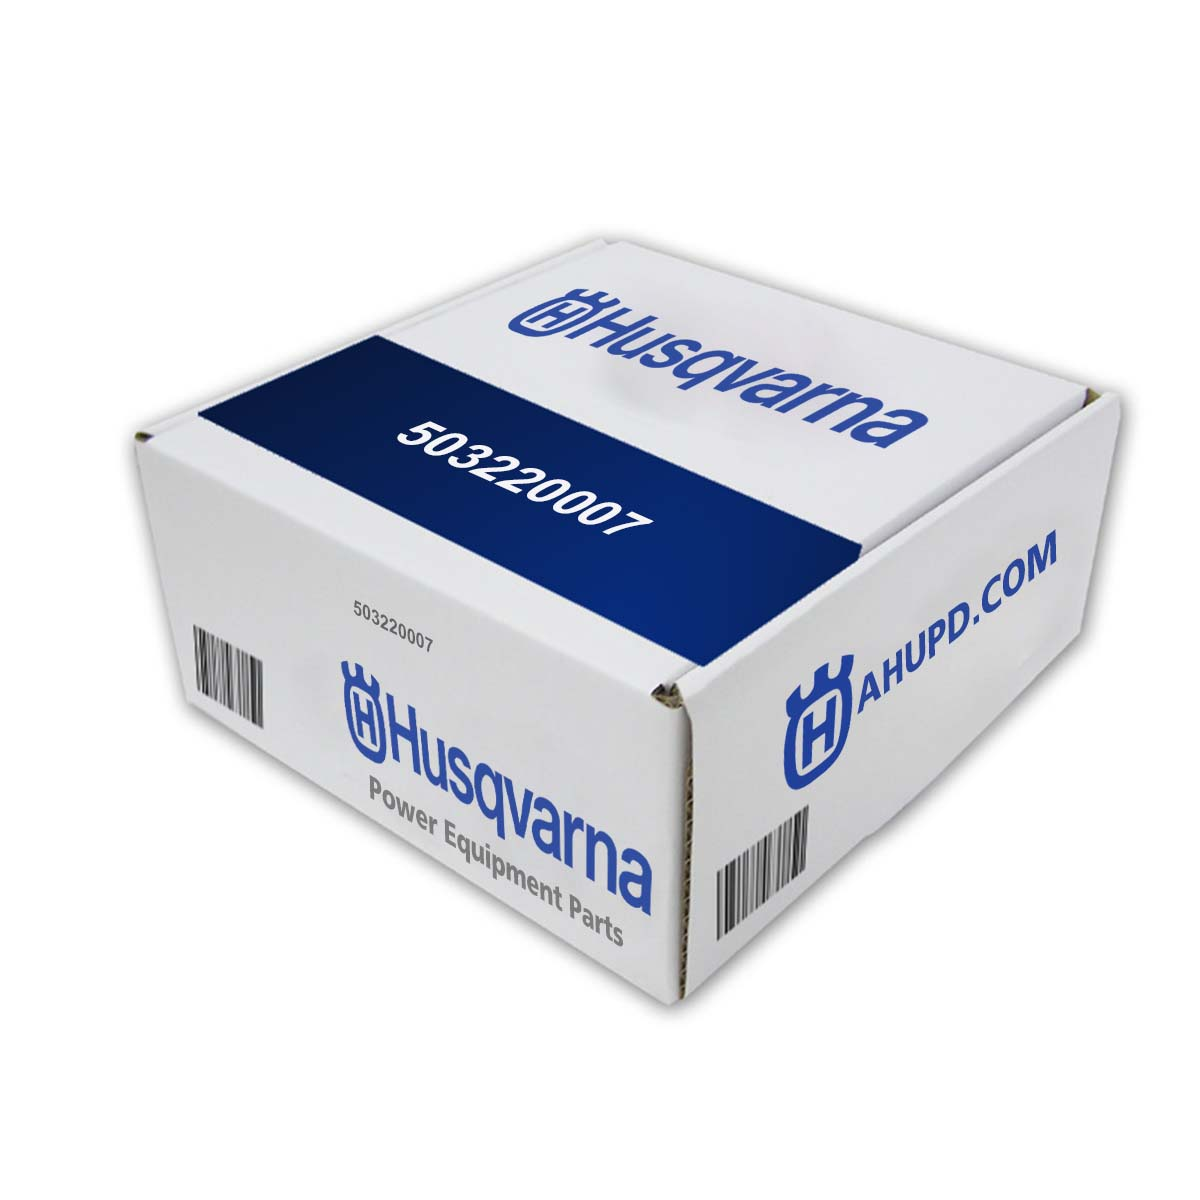 Husqvarna Bar Nut 503220007